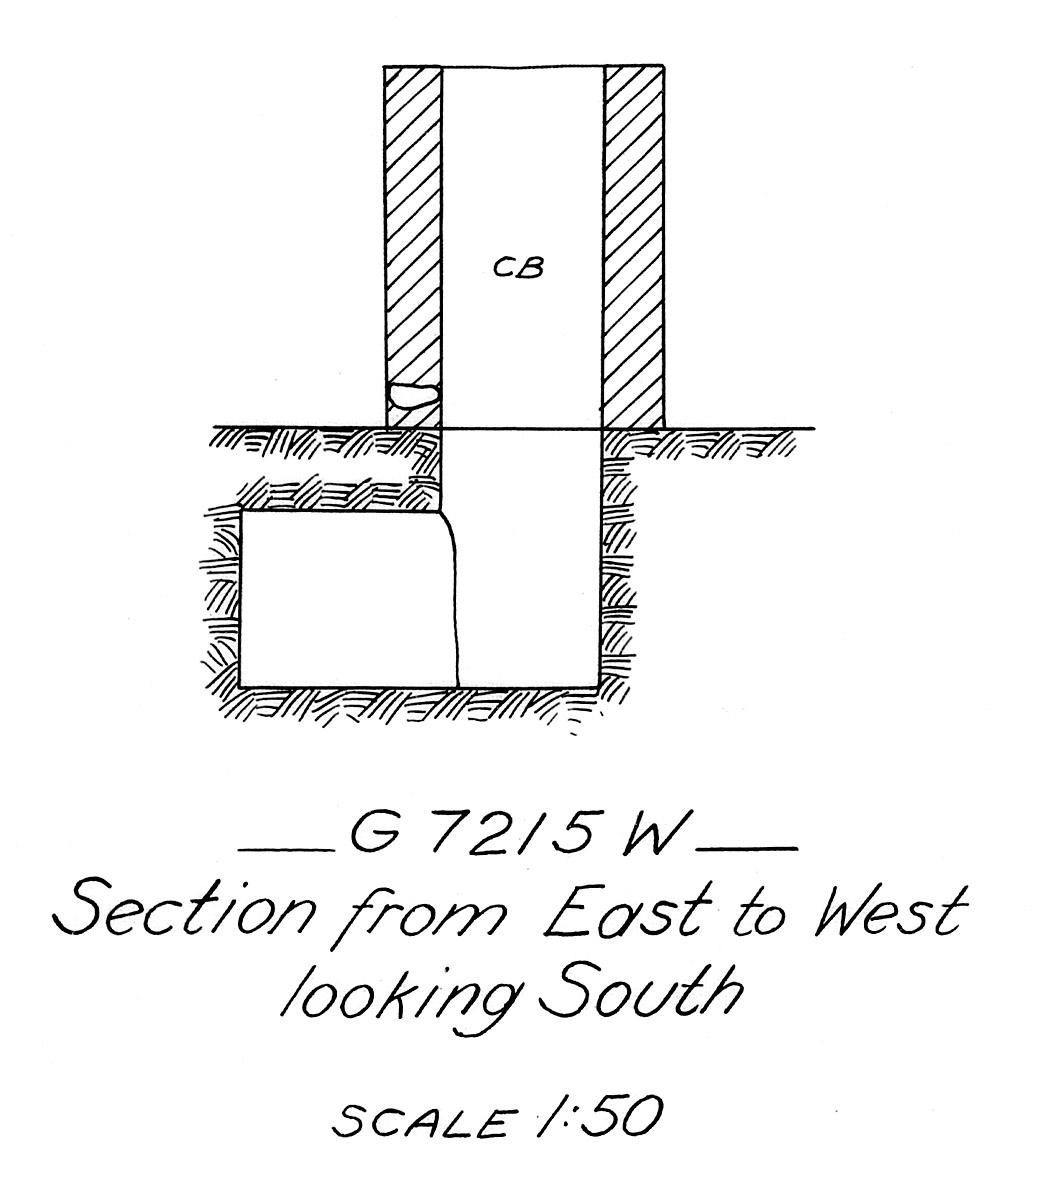 Maps and plans: G 7215, Shaft W